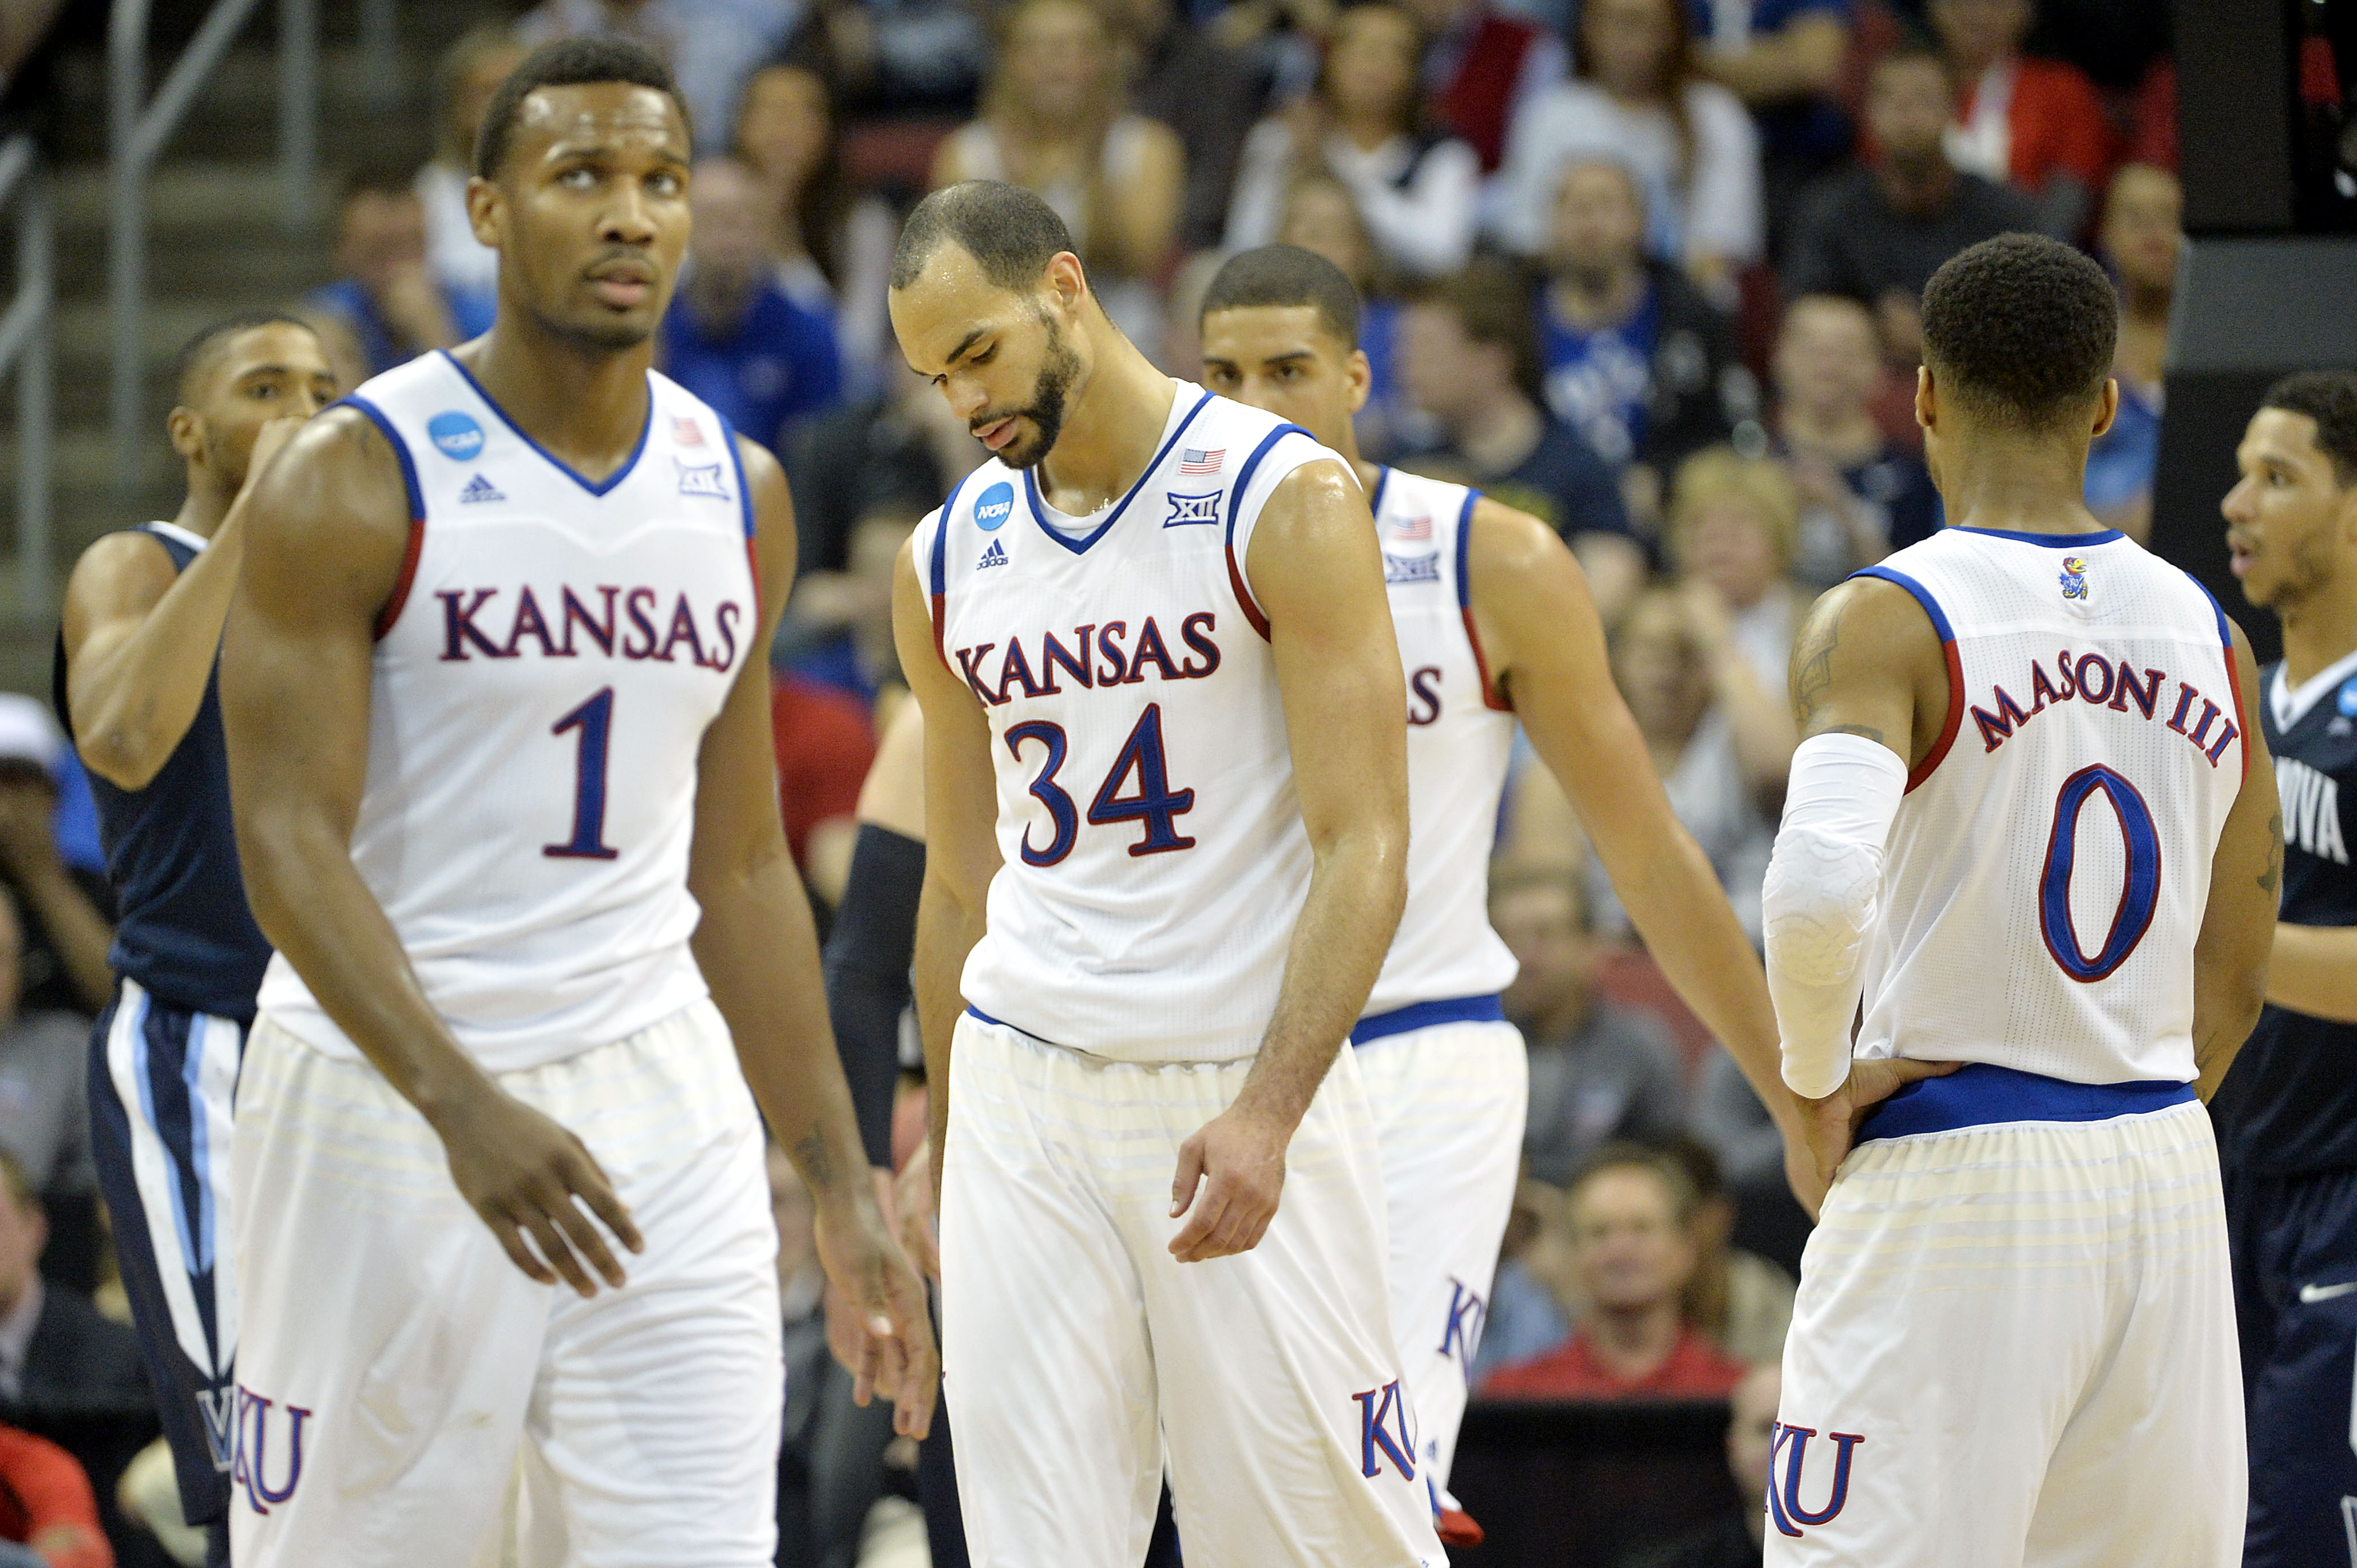 KU Basketball Looking for Deeper Run During March Madness